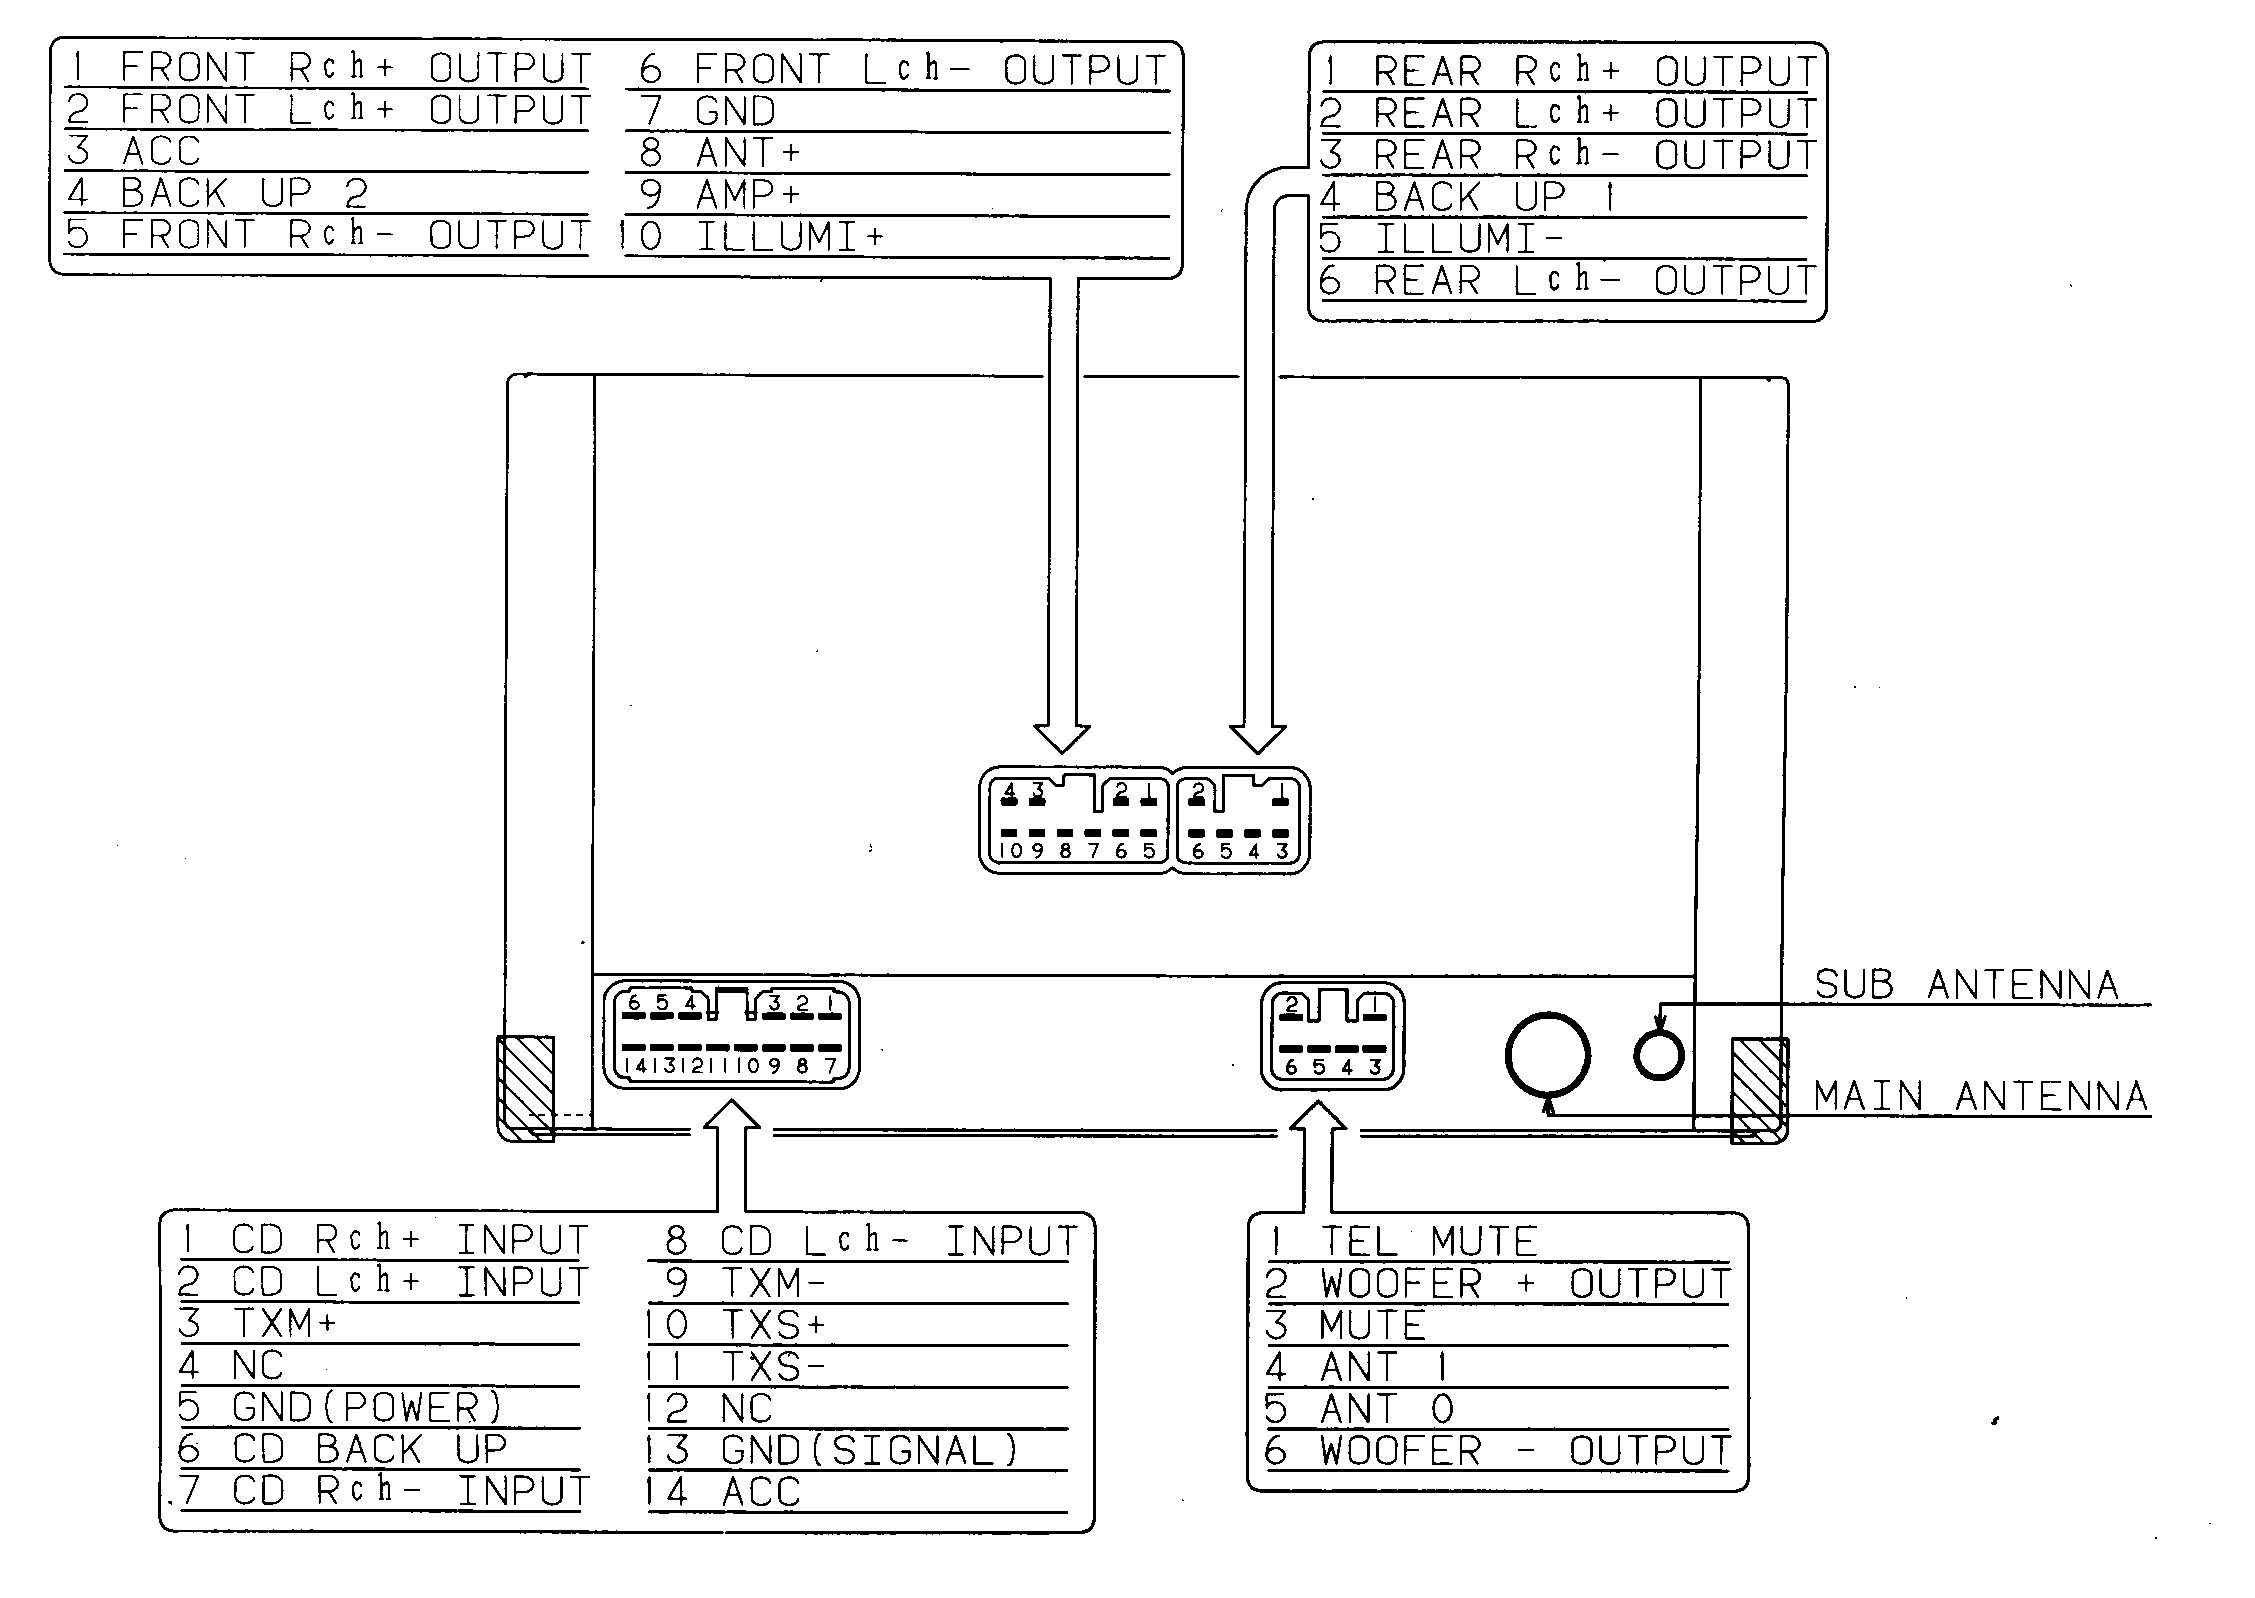 Lexus car stereo wiring diagram harness pinout connector wire hino wiring diagram thomas wiring diagrams \u2022 free wiring diagrams hino stereo wiring harness at edmiracle.co